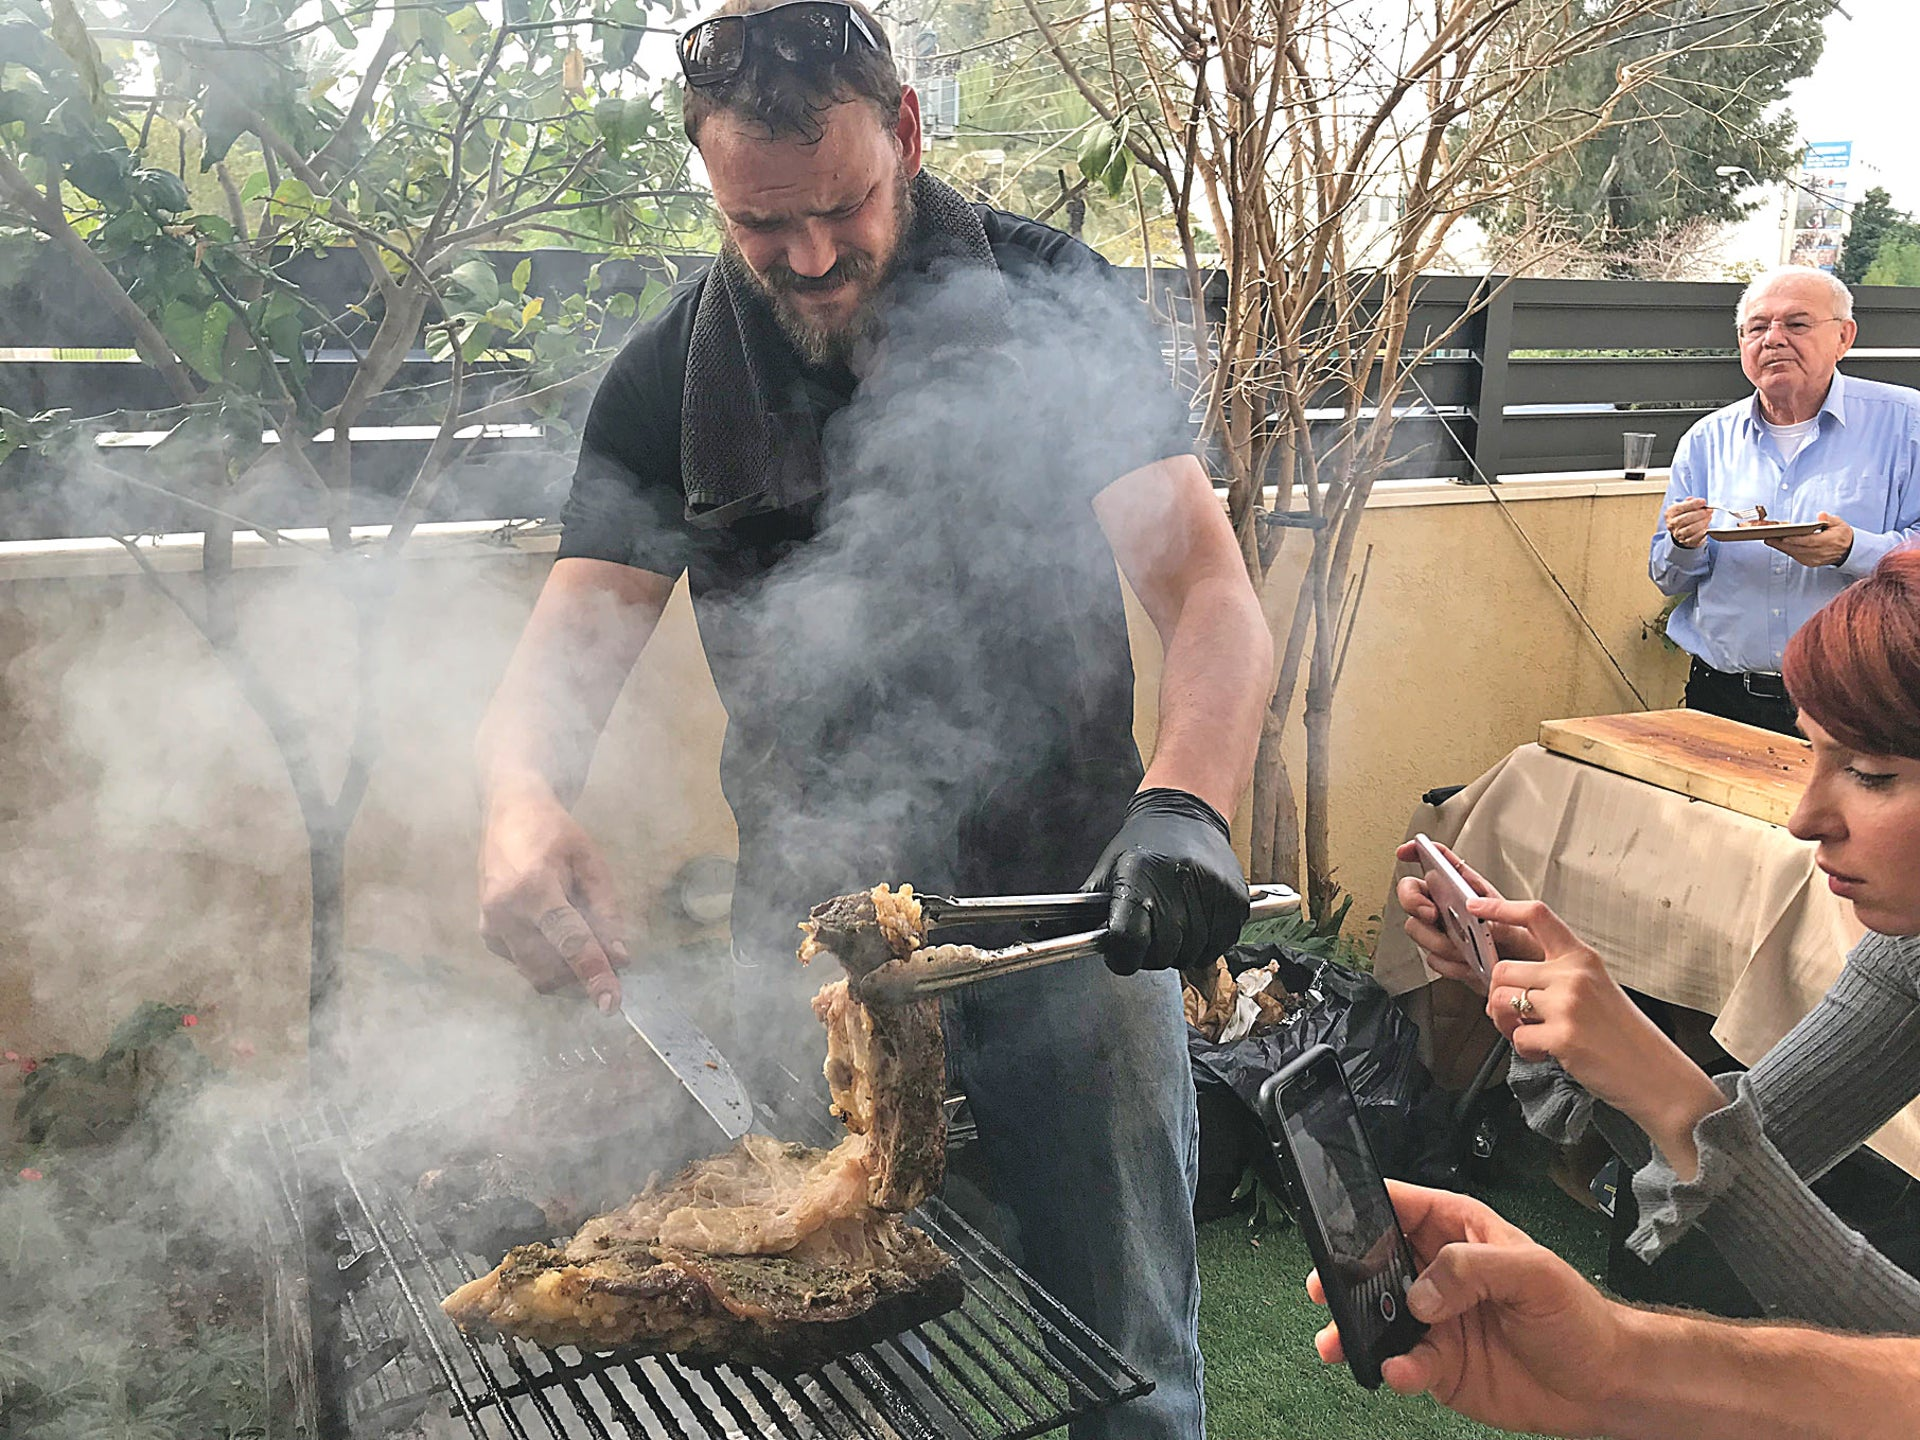 A carnivore mans the barbecue.